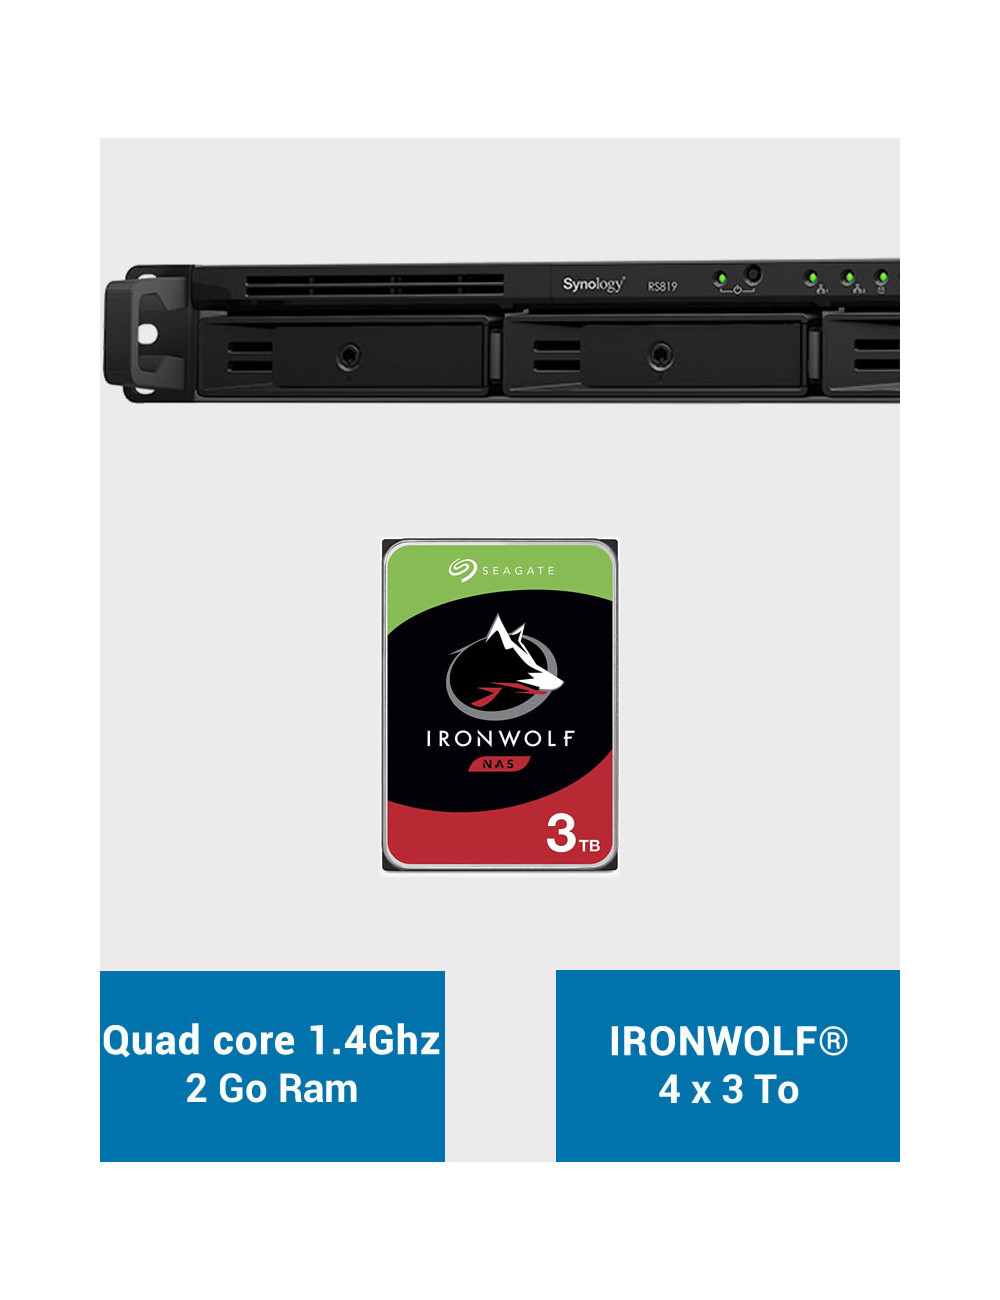 Synology RS819 Serveur NAS IRONWOLF 12To (4x3To)